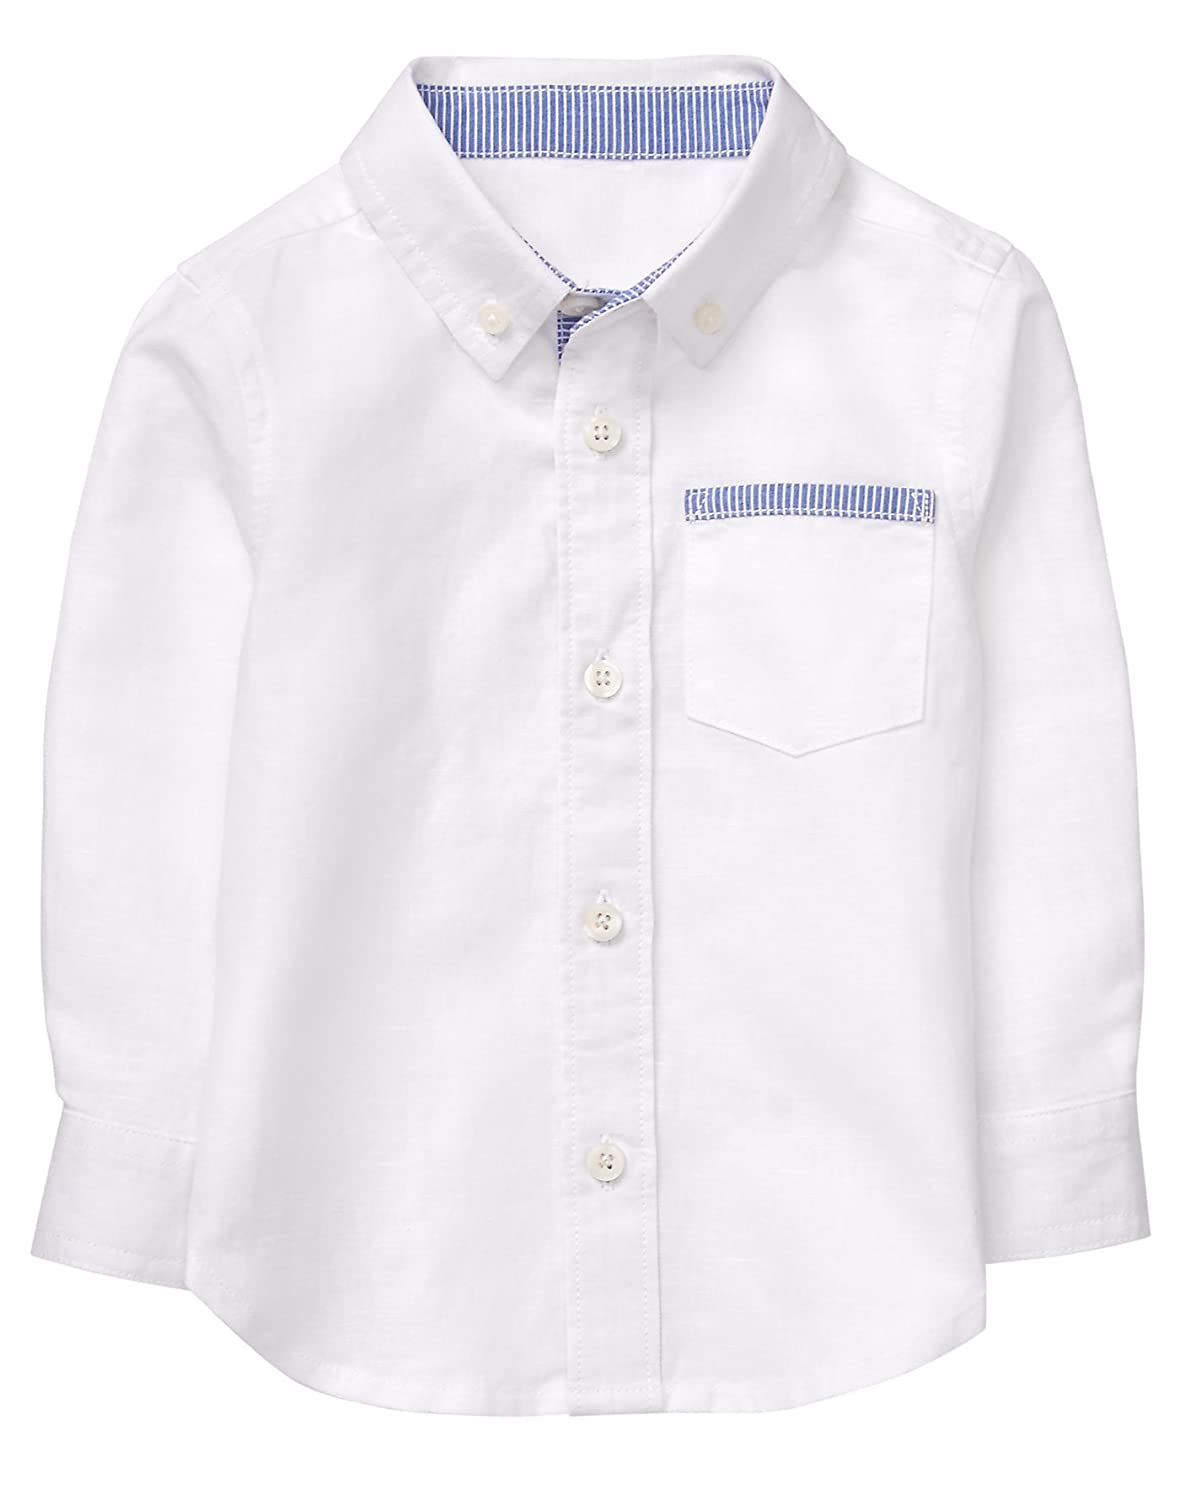 Gymboree Baby Boys Long Sleeve Button Up Shirt